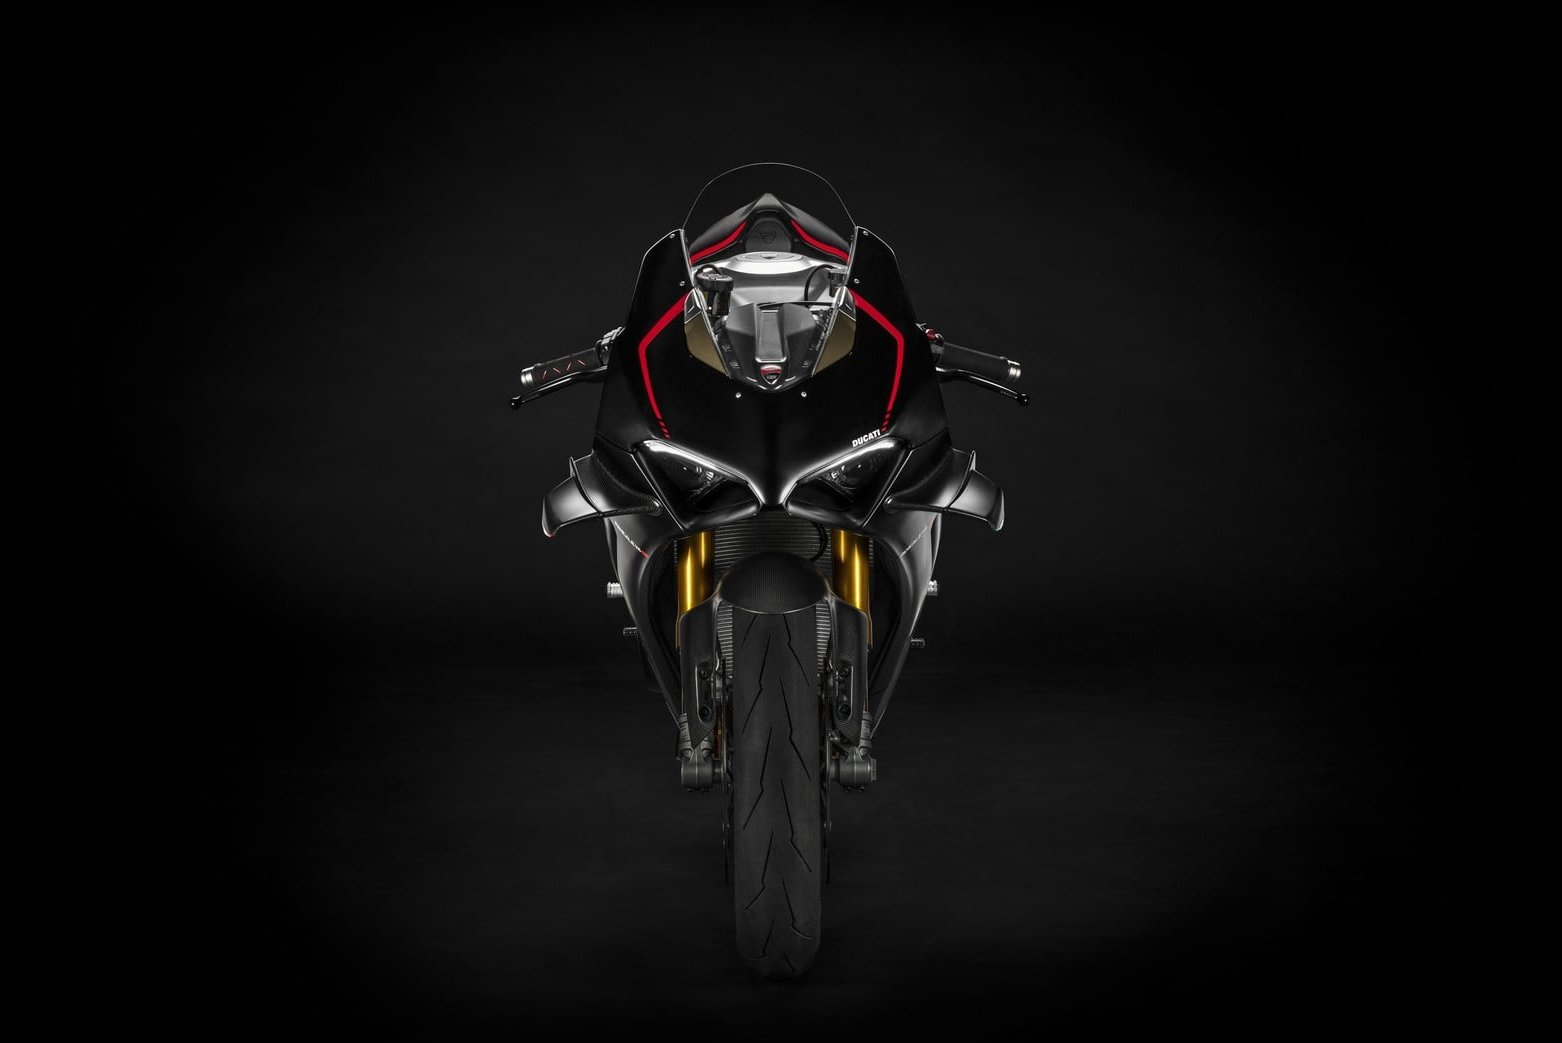 Ducati V4 Panigale - Page 21 12652510